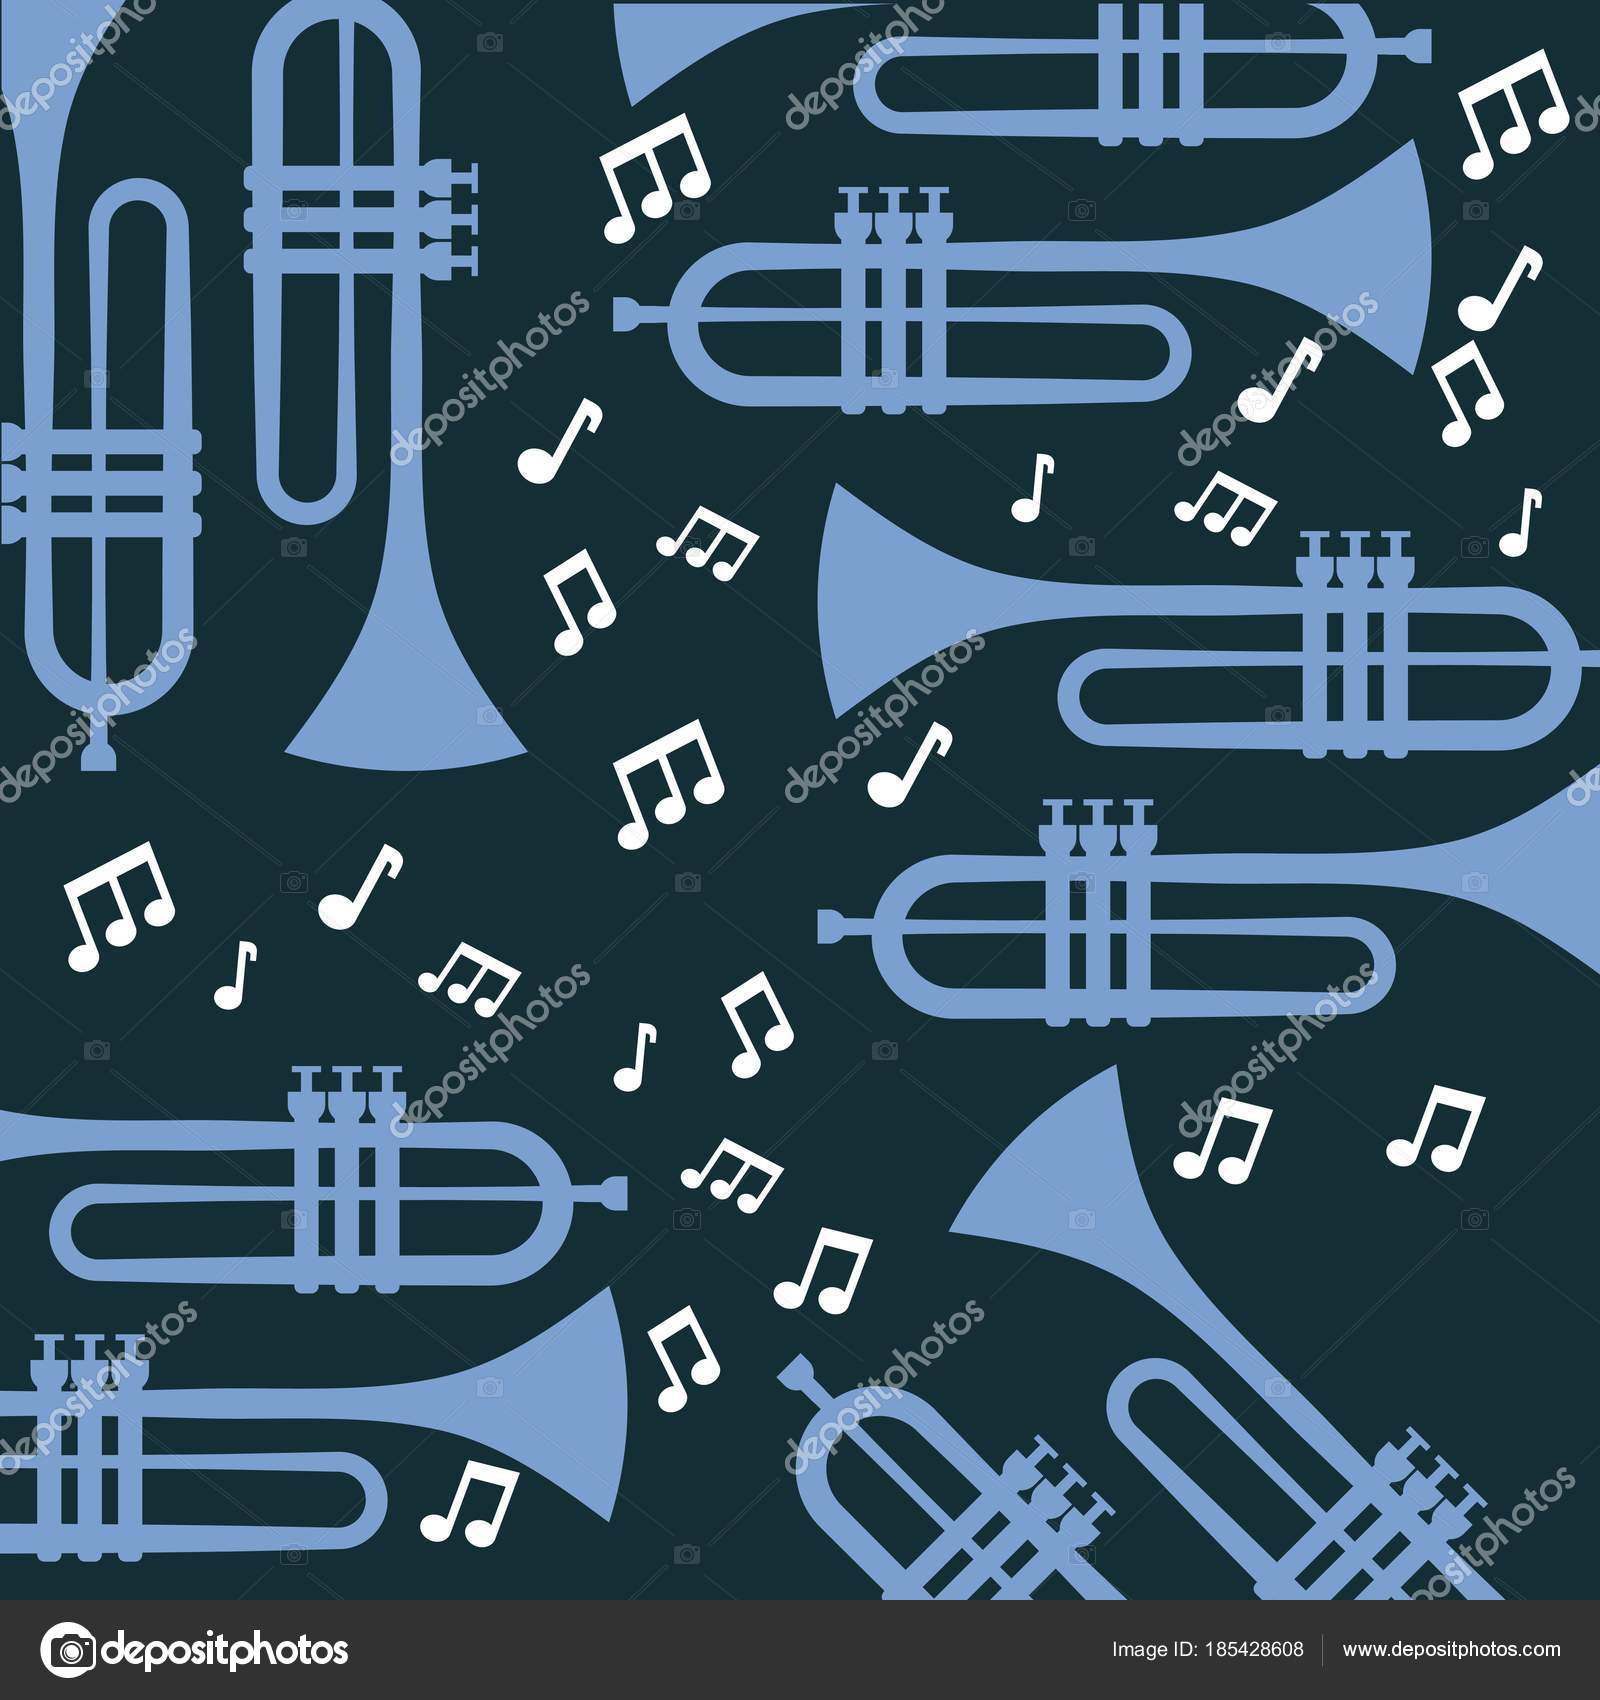 Trumpet Note Music Jazz Poster Wallpaper Patter Stock Vector